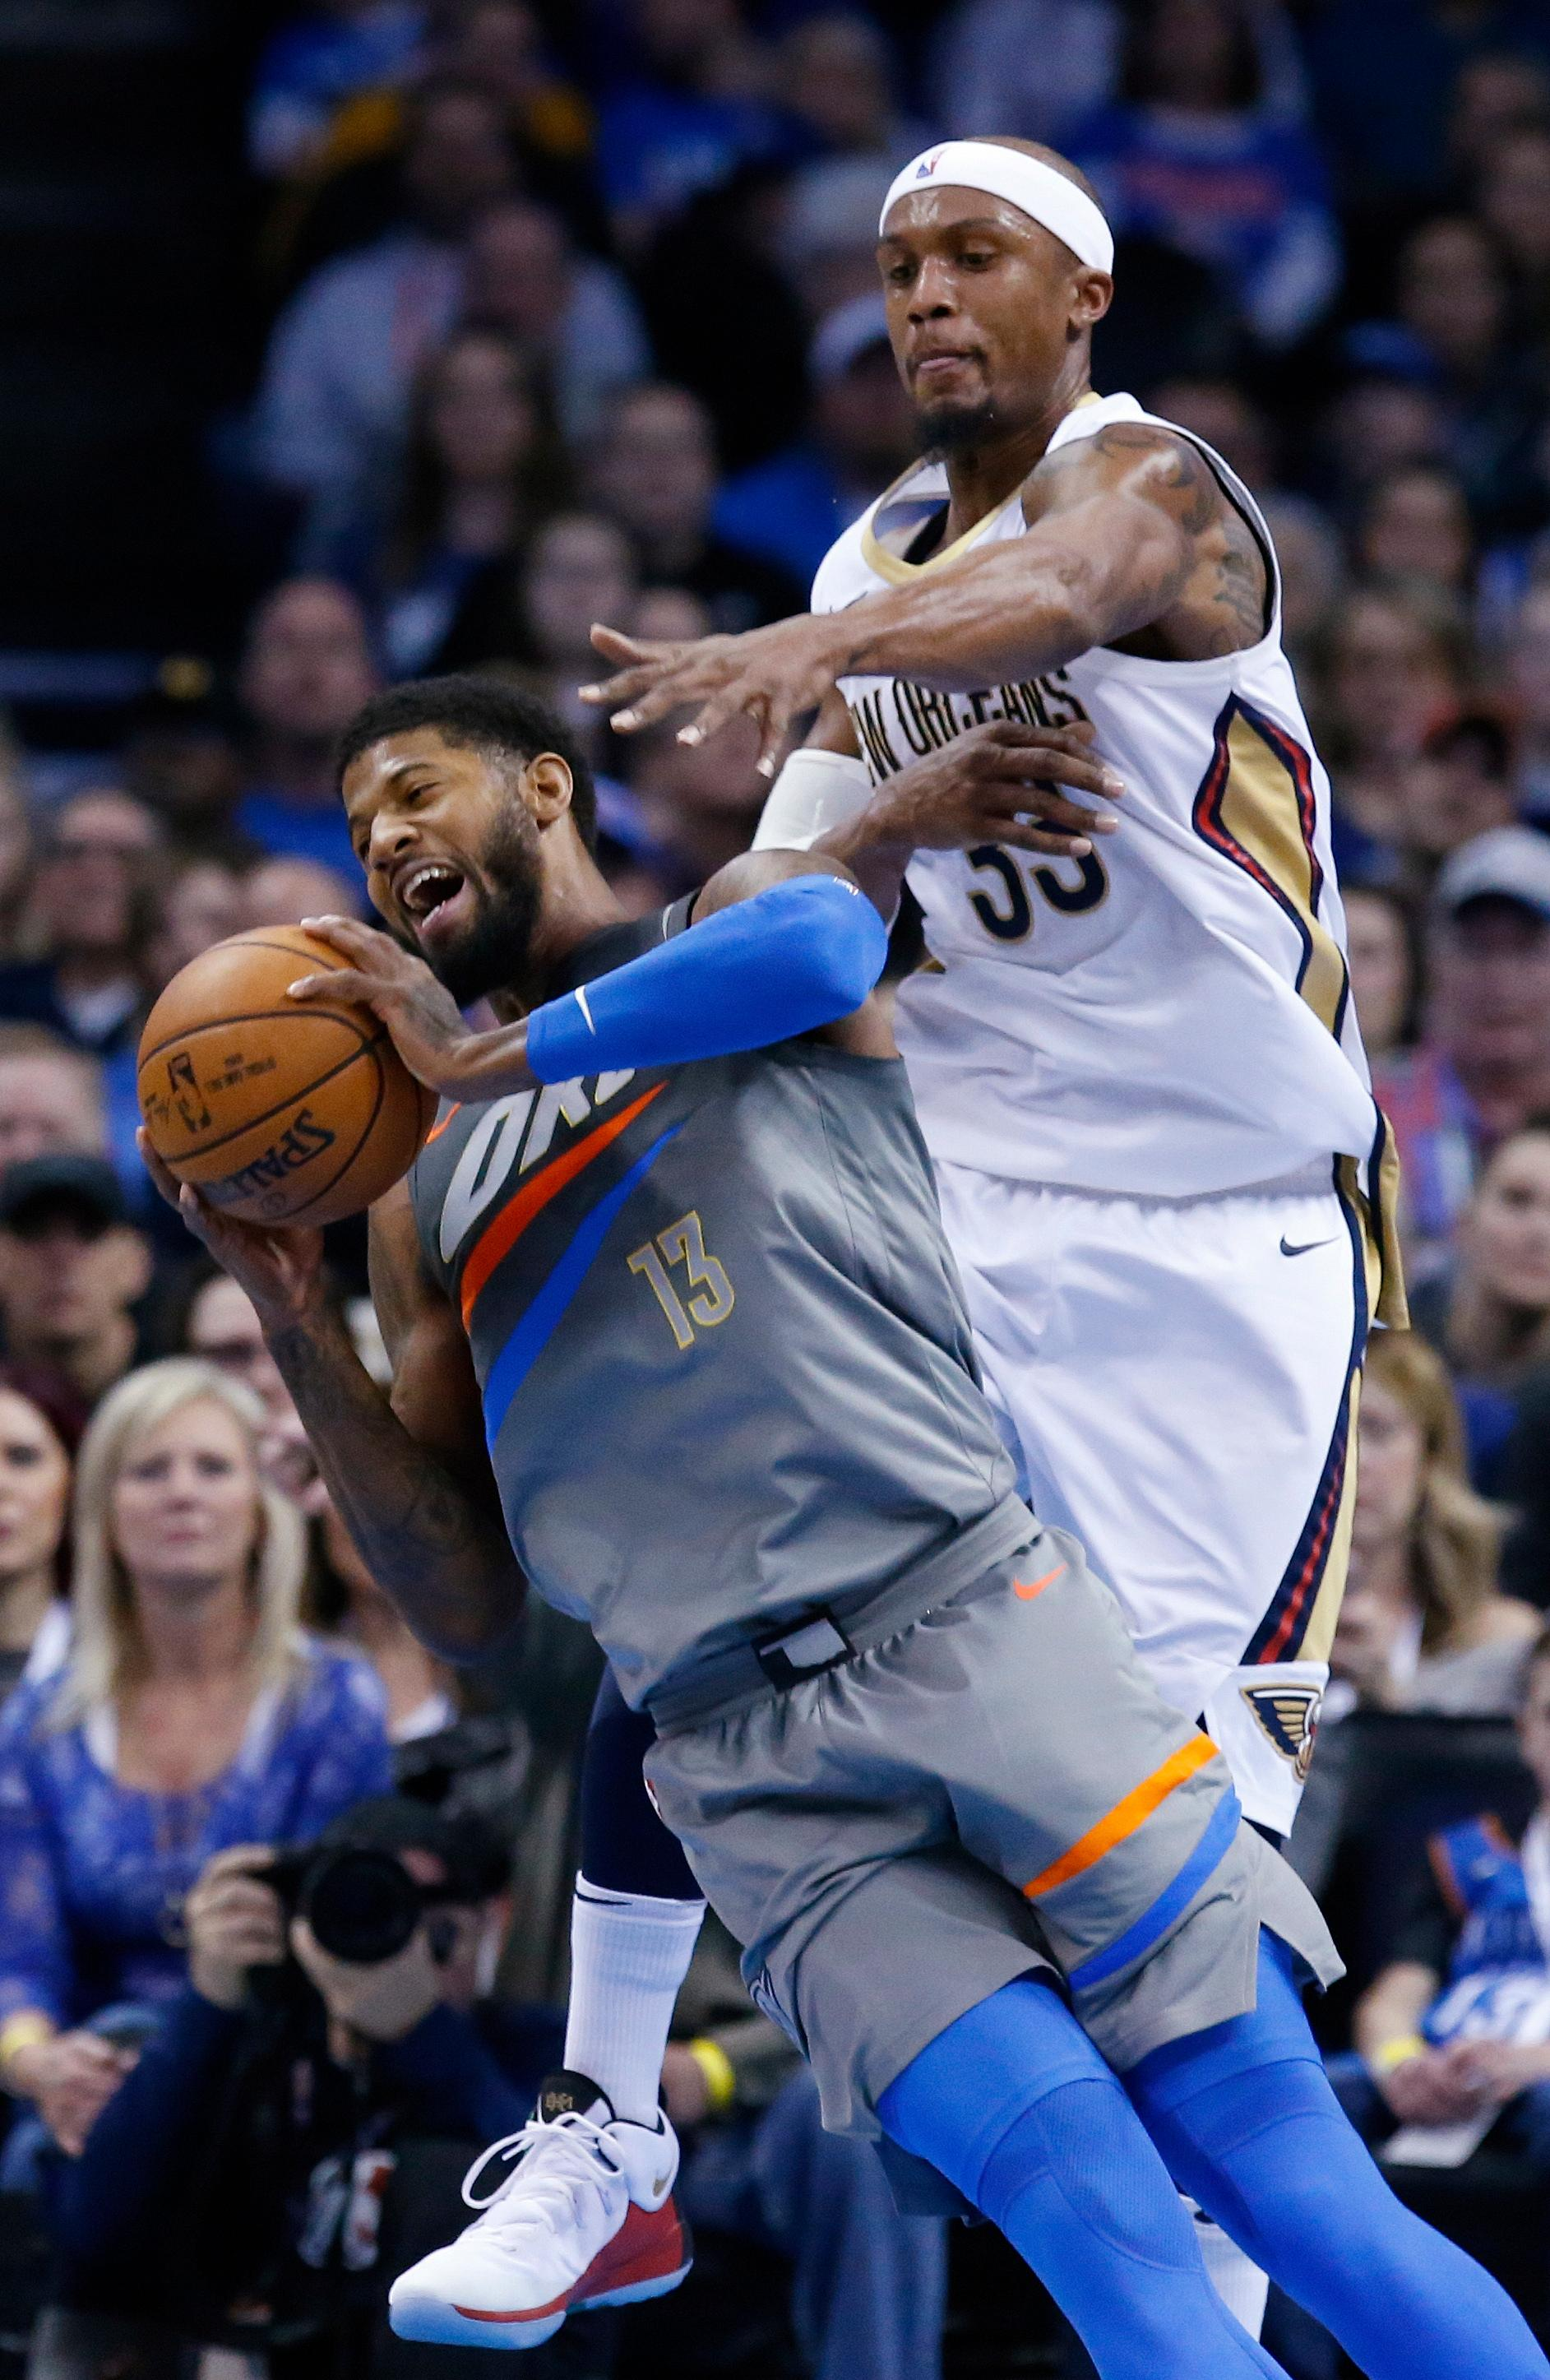 Oklahoma City Thunder forward Paul George (13) is fouled by New Orleans Pelicans forward Dante Cunningham (33) during the first half of an NBA basketball game in Oklahoma City, Friday, Feb. 2, 2018. (AP Photo/Sue Ogrocki)